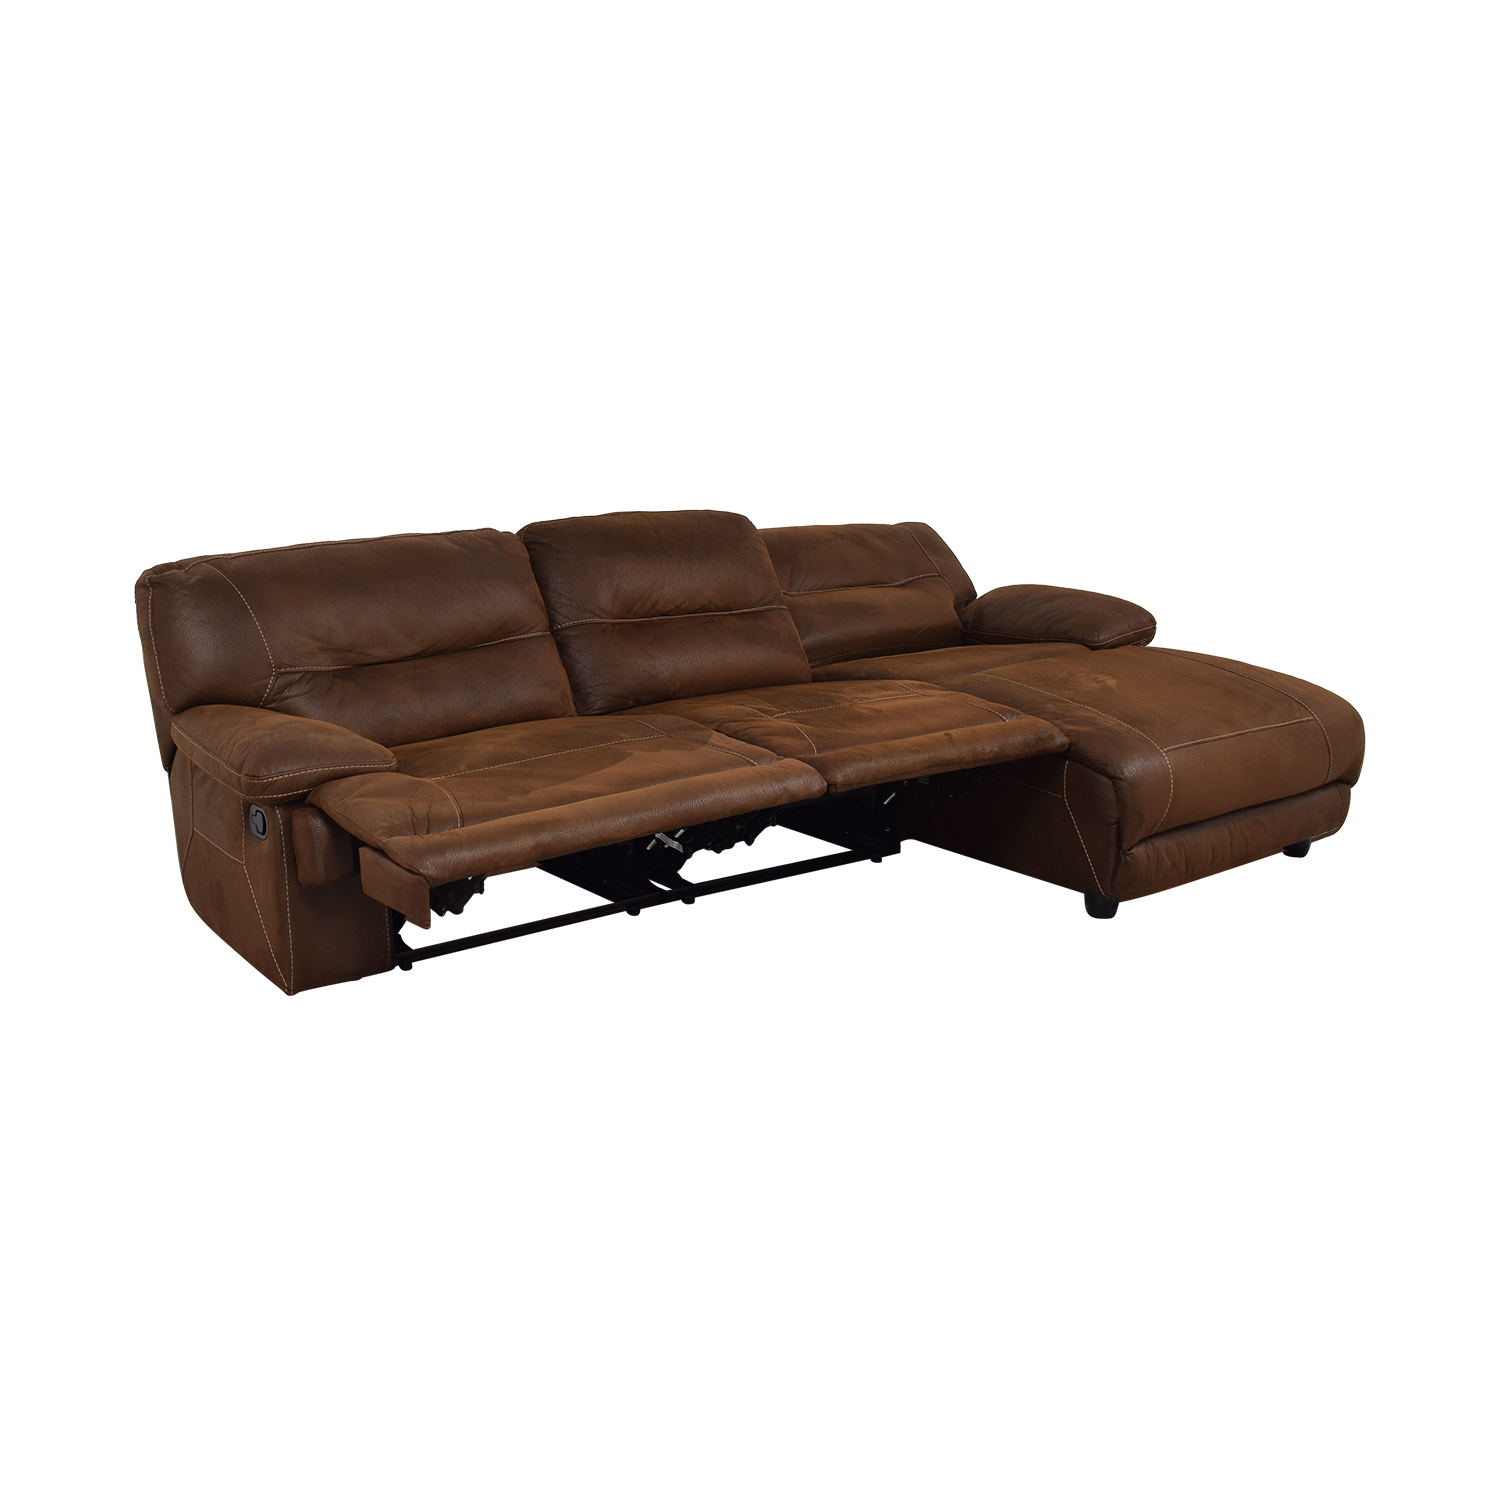 Furniture Chaise 71 Off Bob S Discount Furniture Bob S Discount Furniture Brown Tufted Chaise Sectional Recliner Sofas